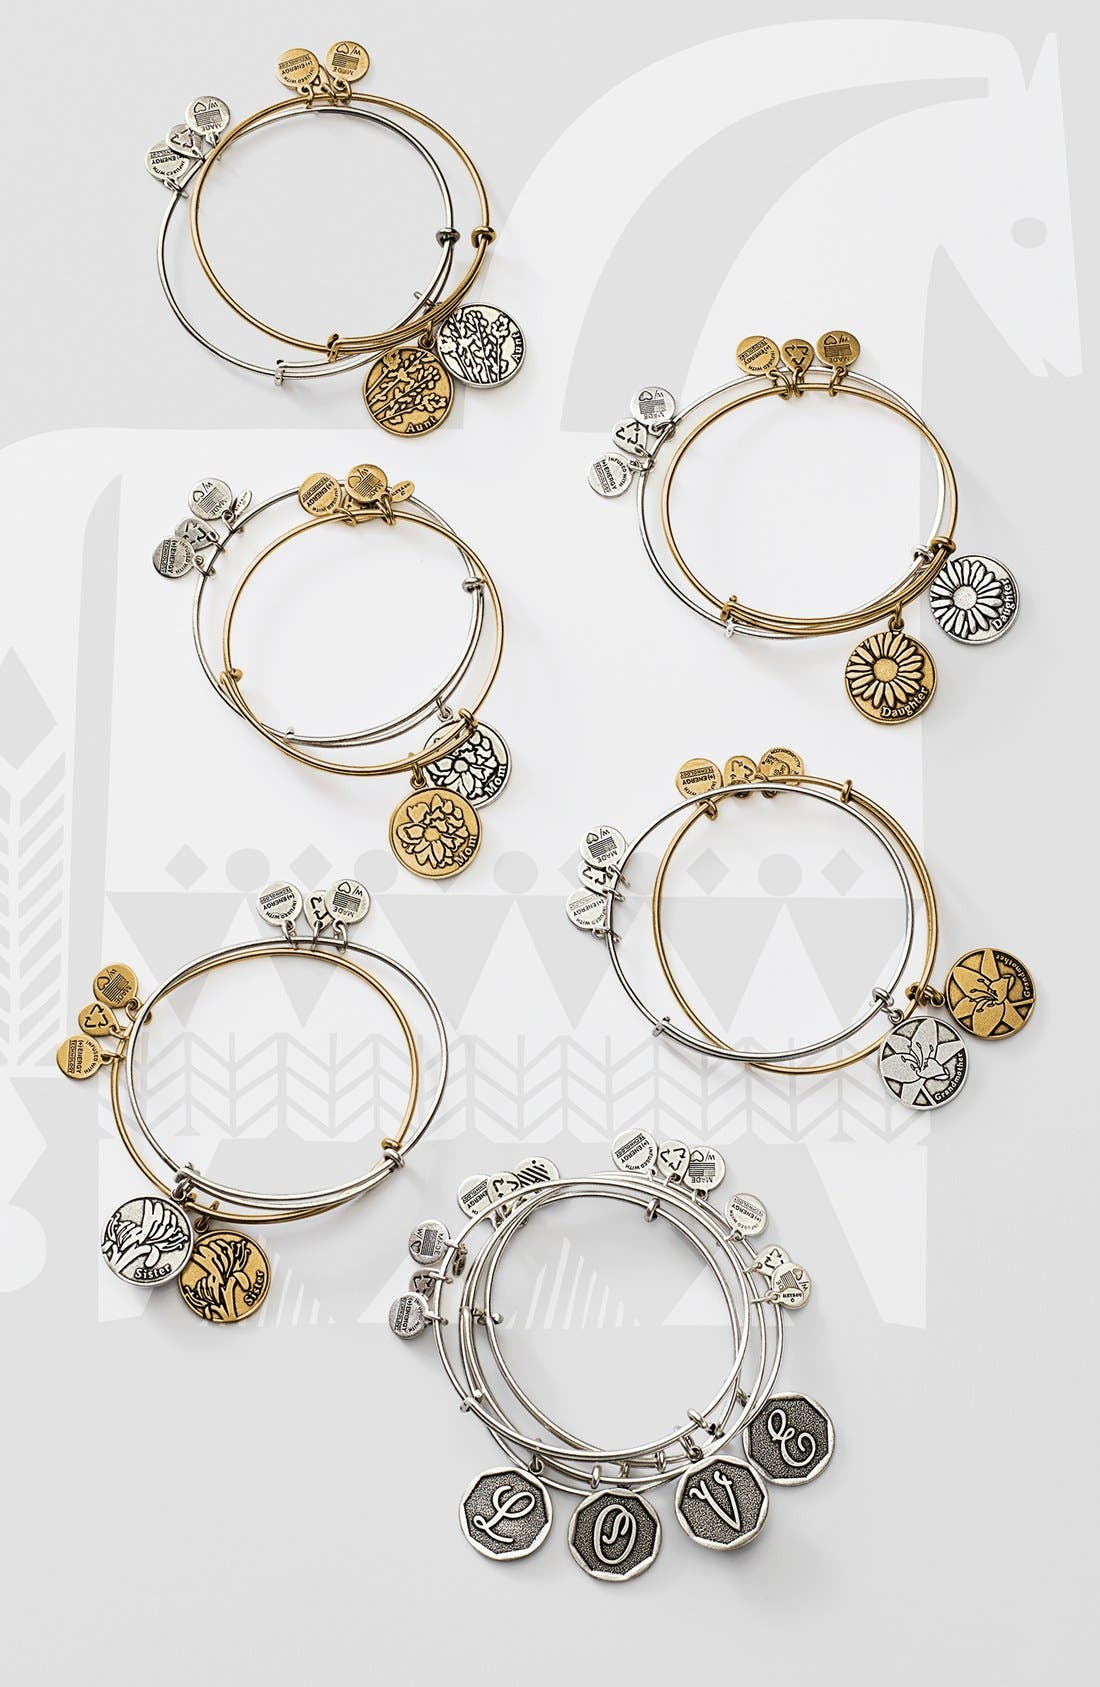 ALEX AND ANI,                             'Initial' Adjustable Wire Bangle,                             Alternate thumbnail 4, color,                             710